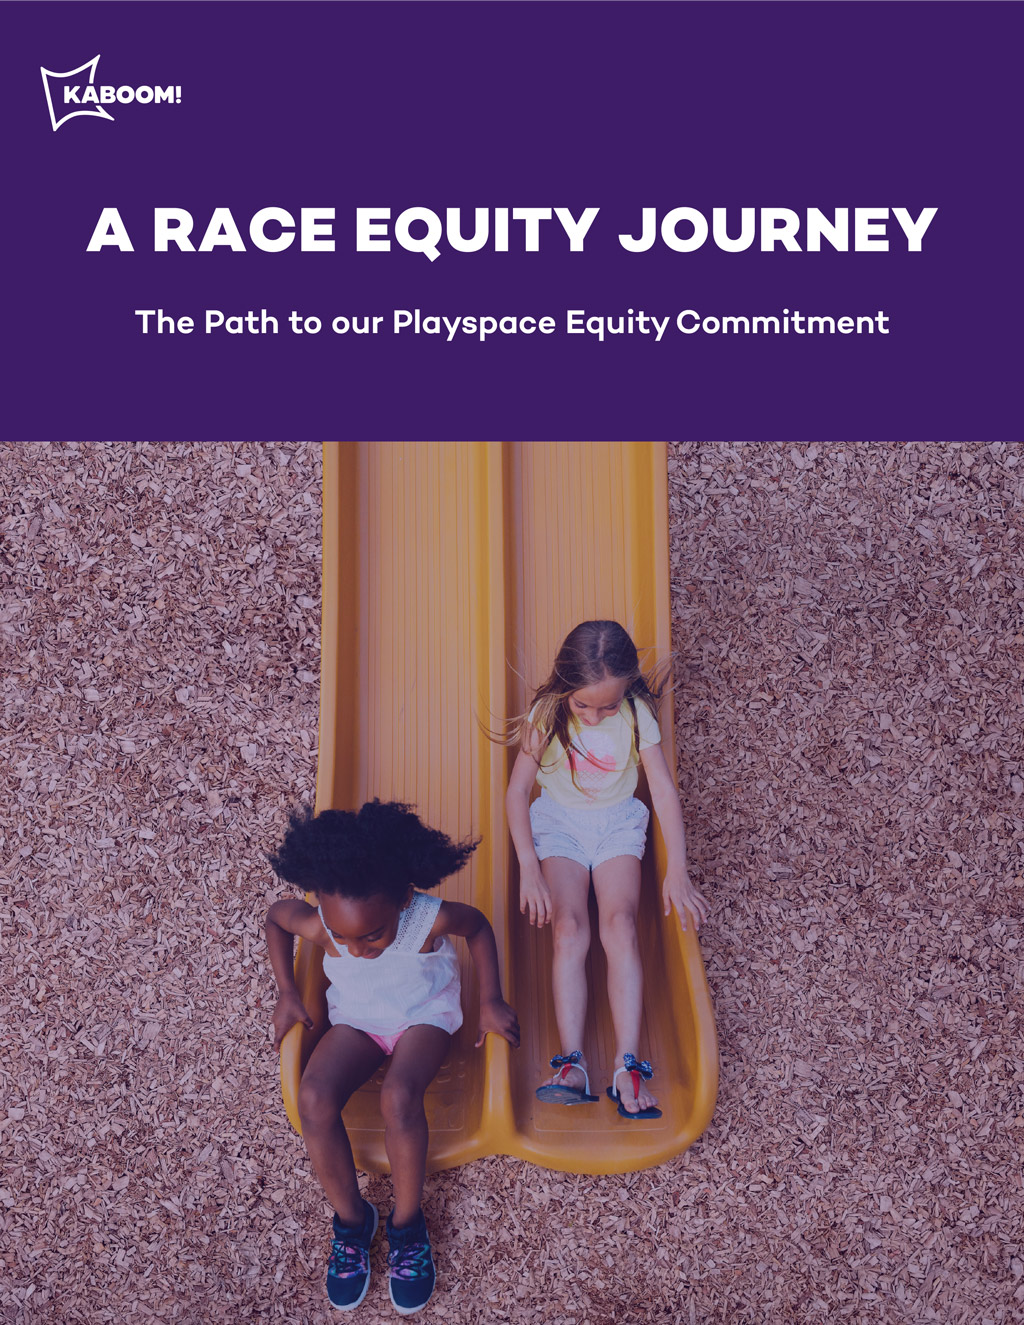 A Race Equity Journey